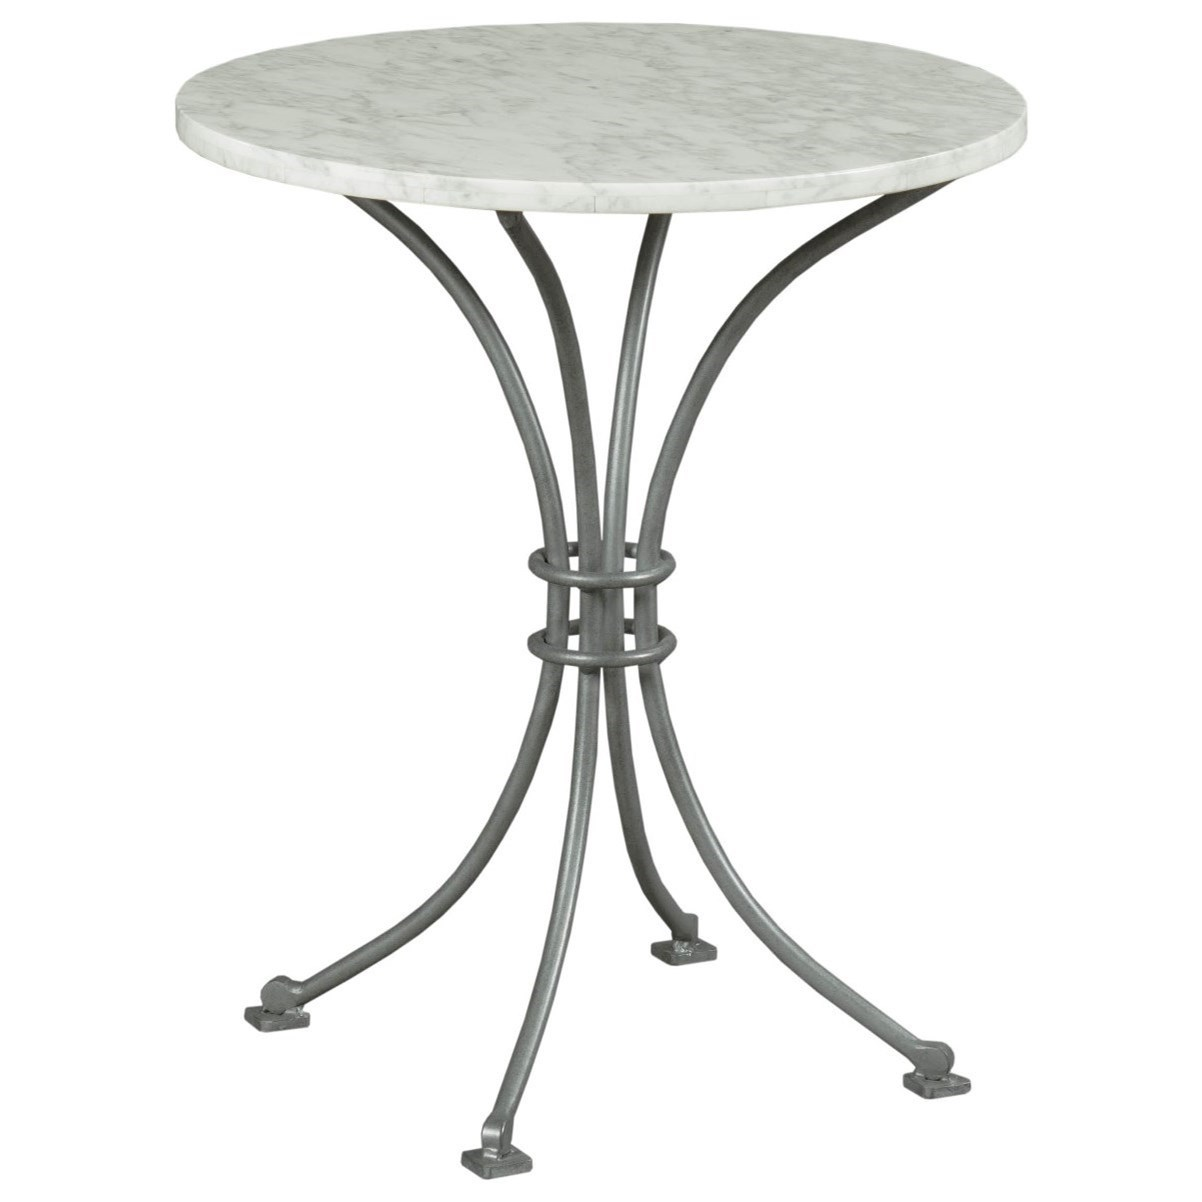 Litchfield Dover Chair Side Table by American Drew at Stoney Creek Furniture